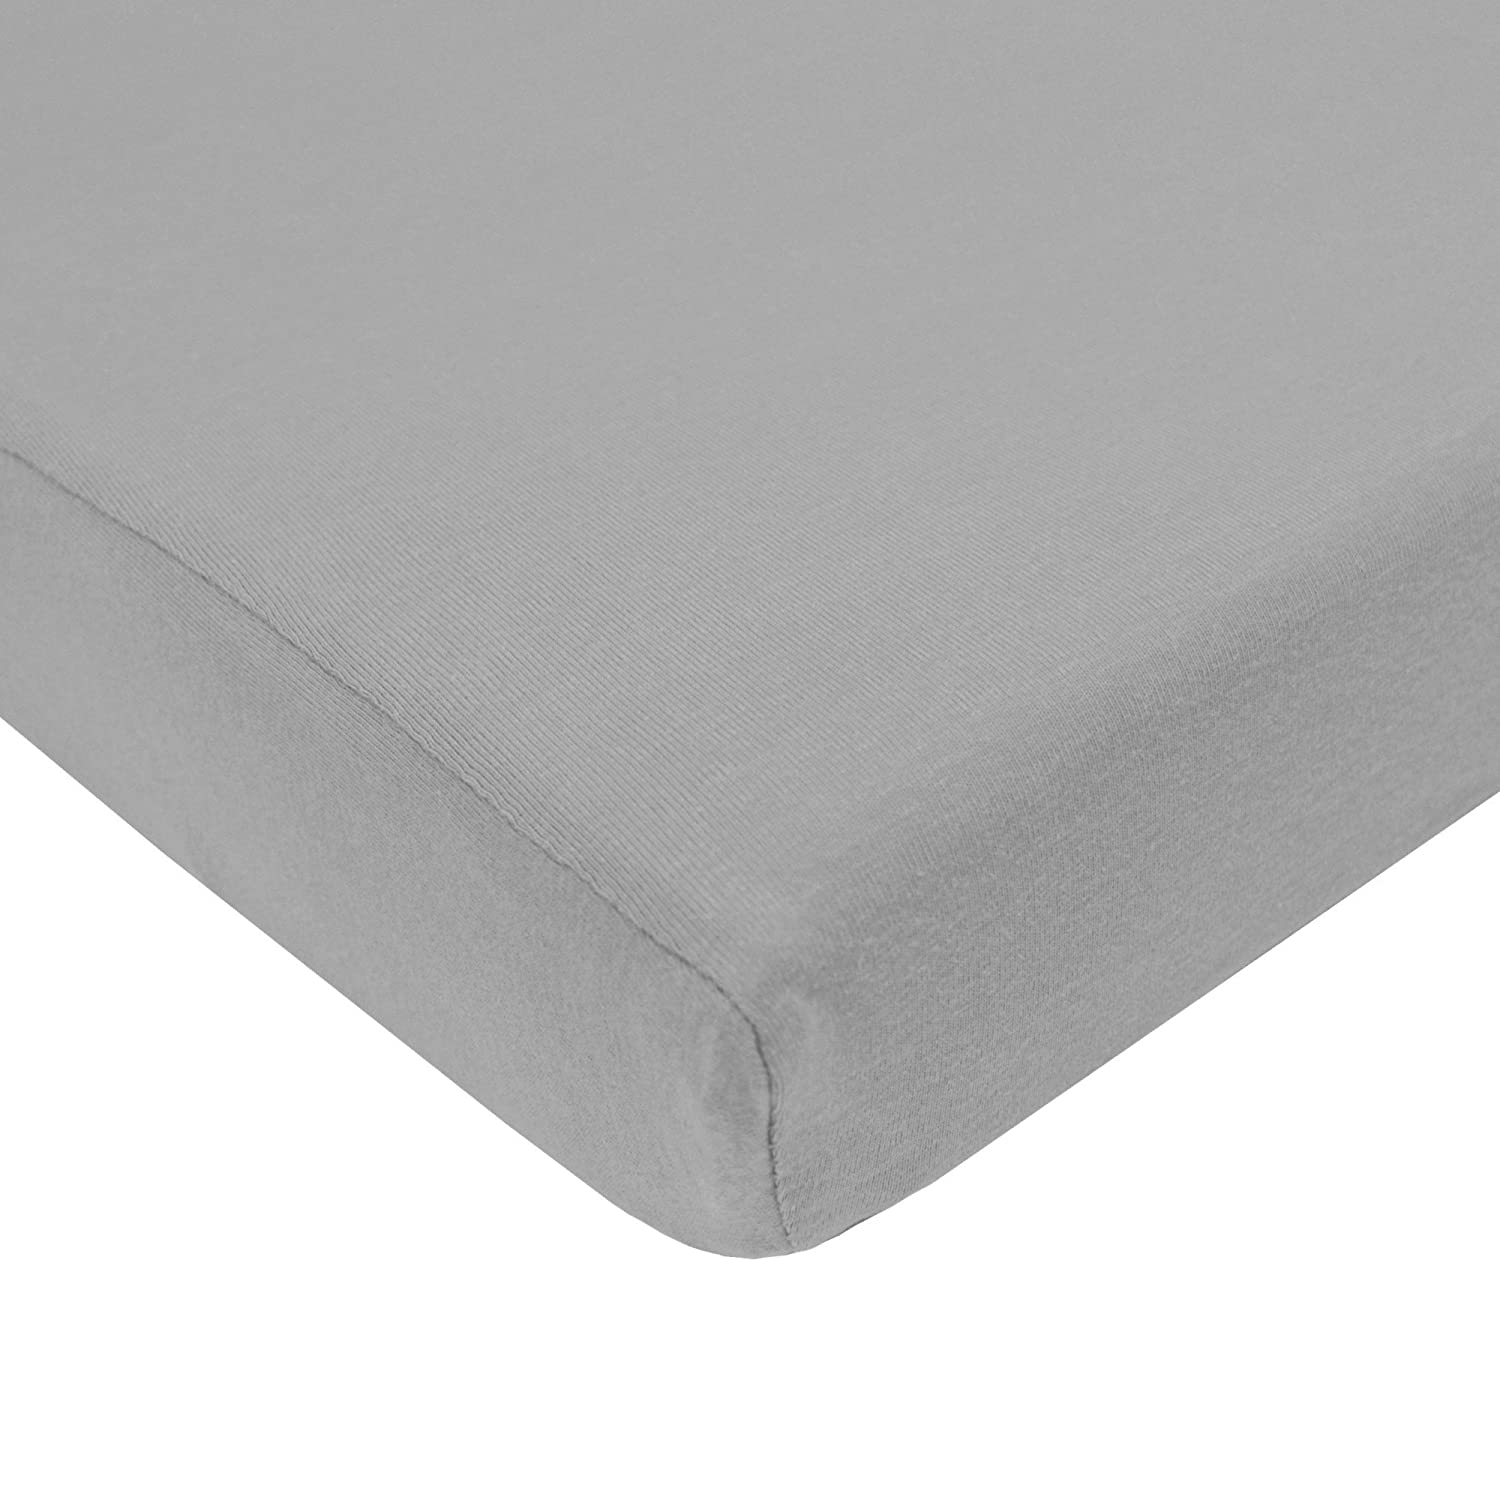 American Baby Company 100% Natural Cotton Value Jersey Knit Fitted Square Pack N Play Playard Sheet, Grey, Soft Breathable, for Boys and Girls, 36x36 Inch